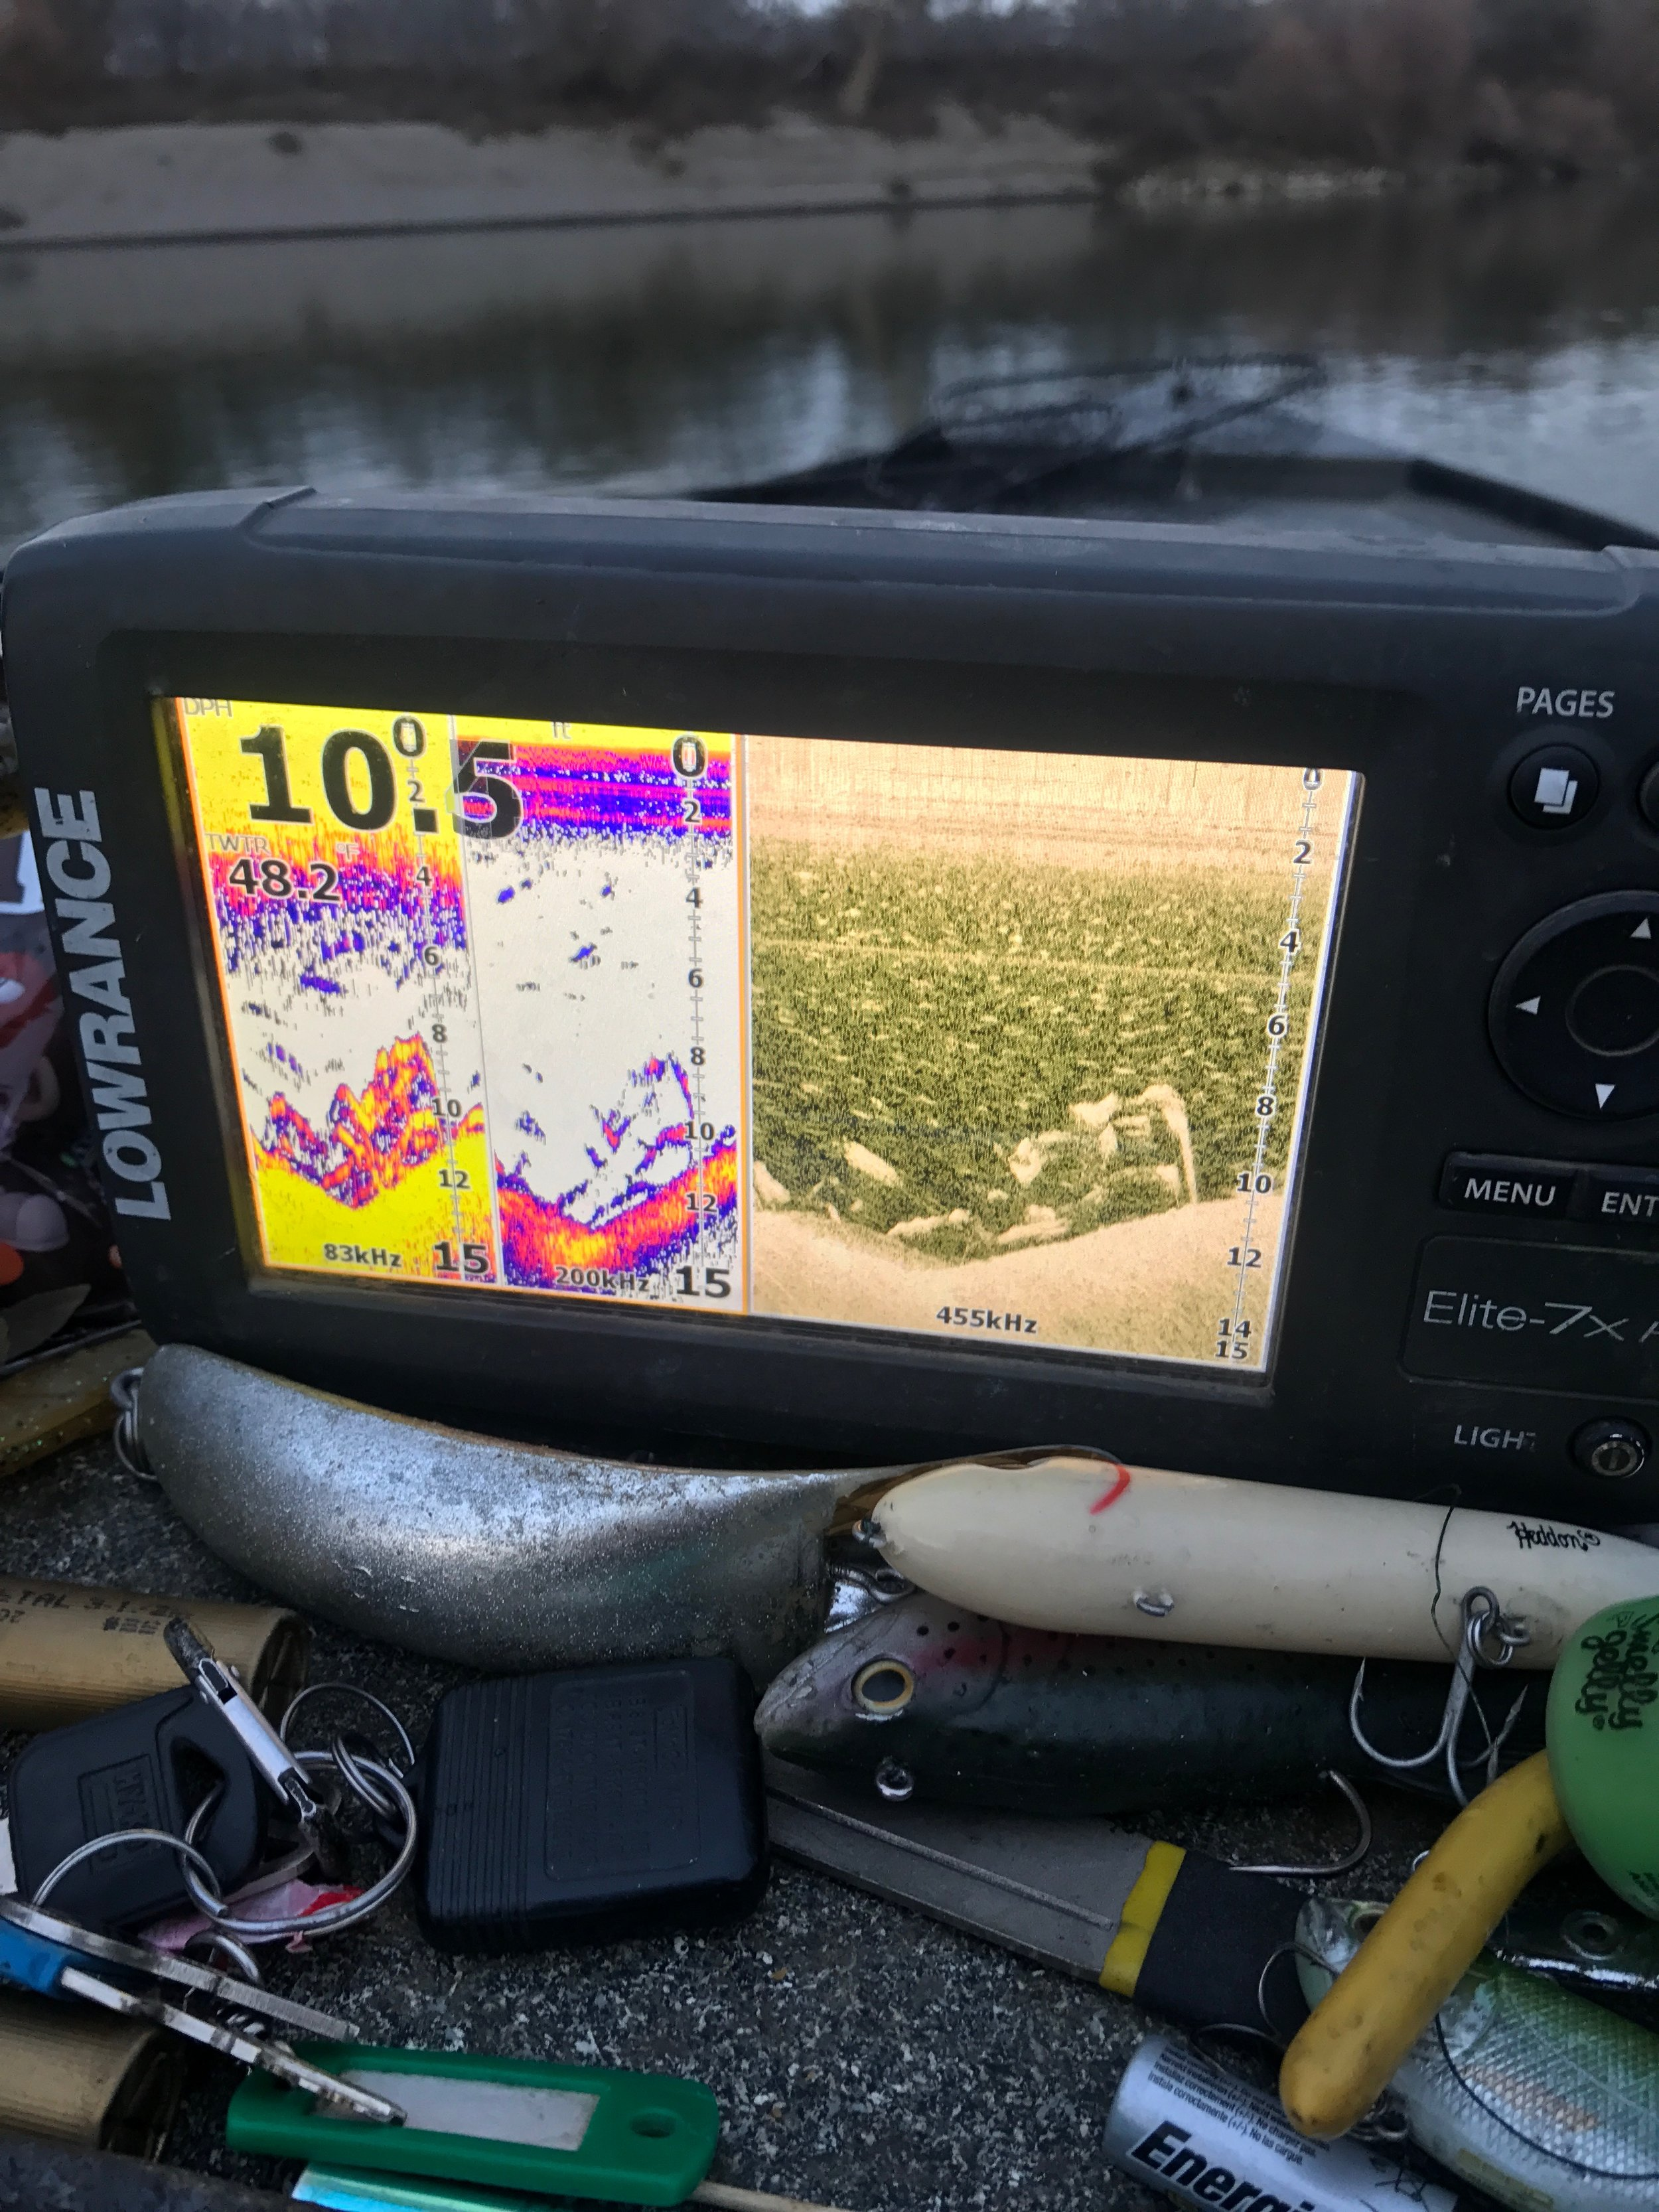 Fishing guide Mike Rasmussen takes a photo of his Lowrance fish finder as a dozen quality striped bass appear on the screen.